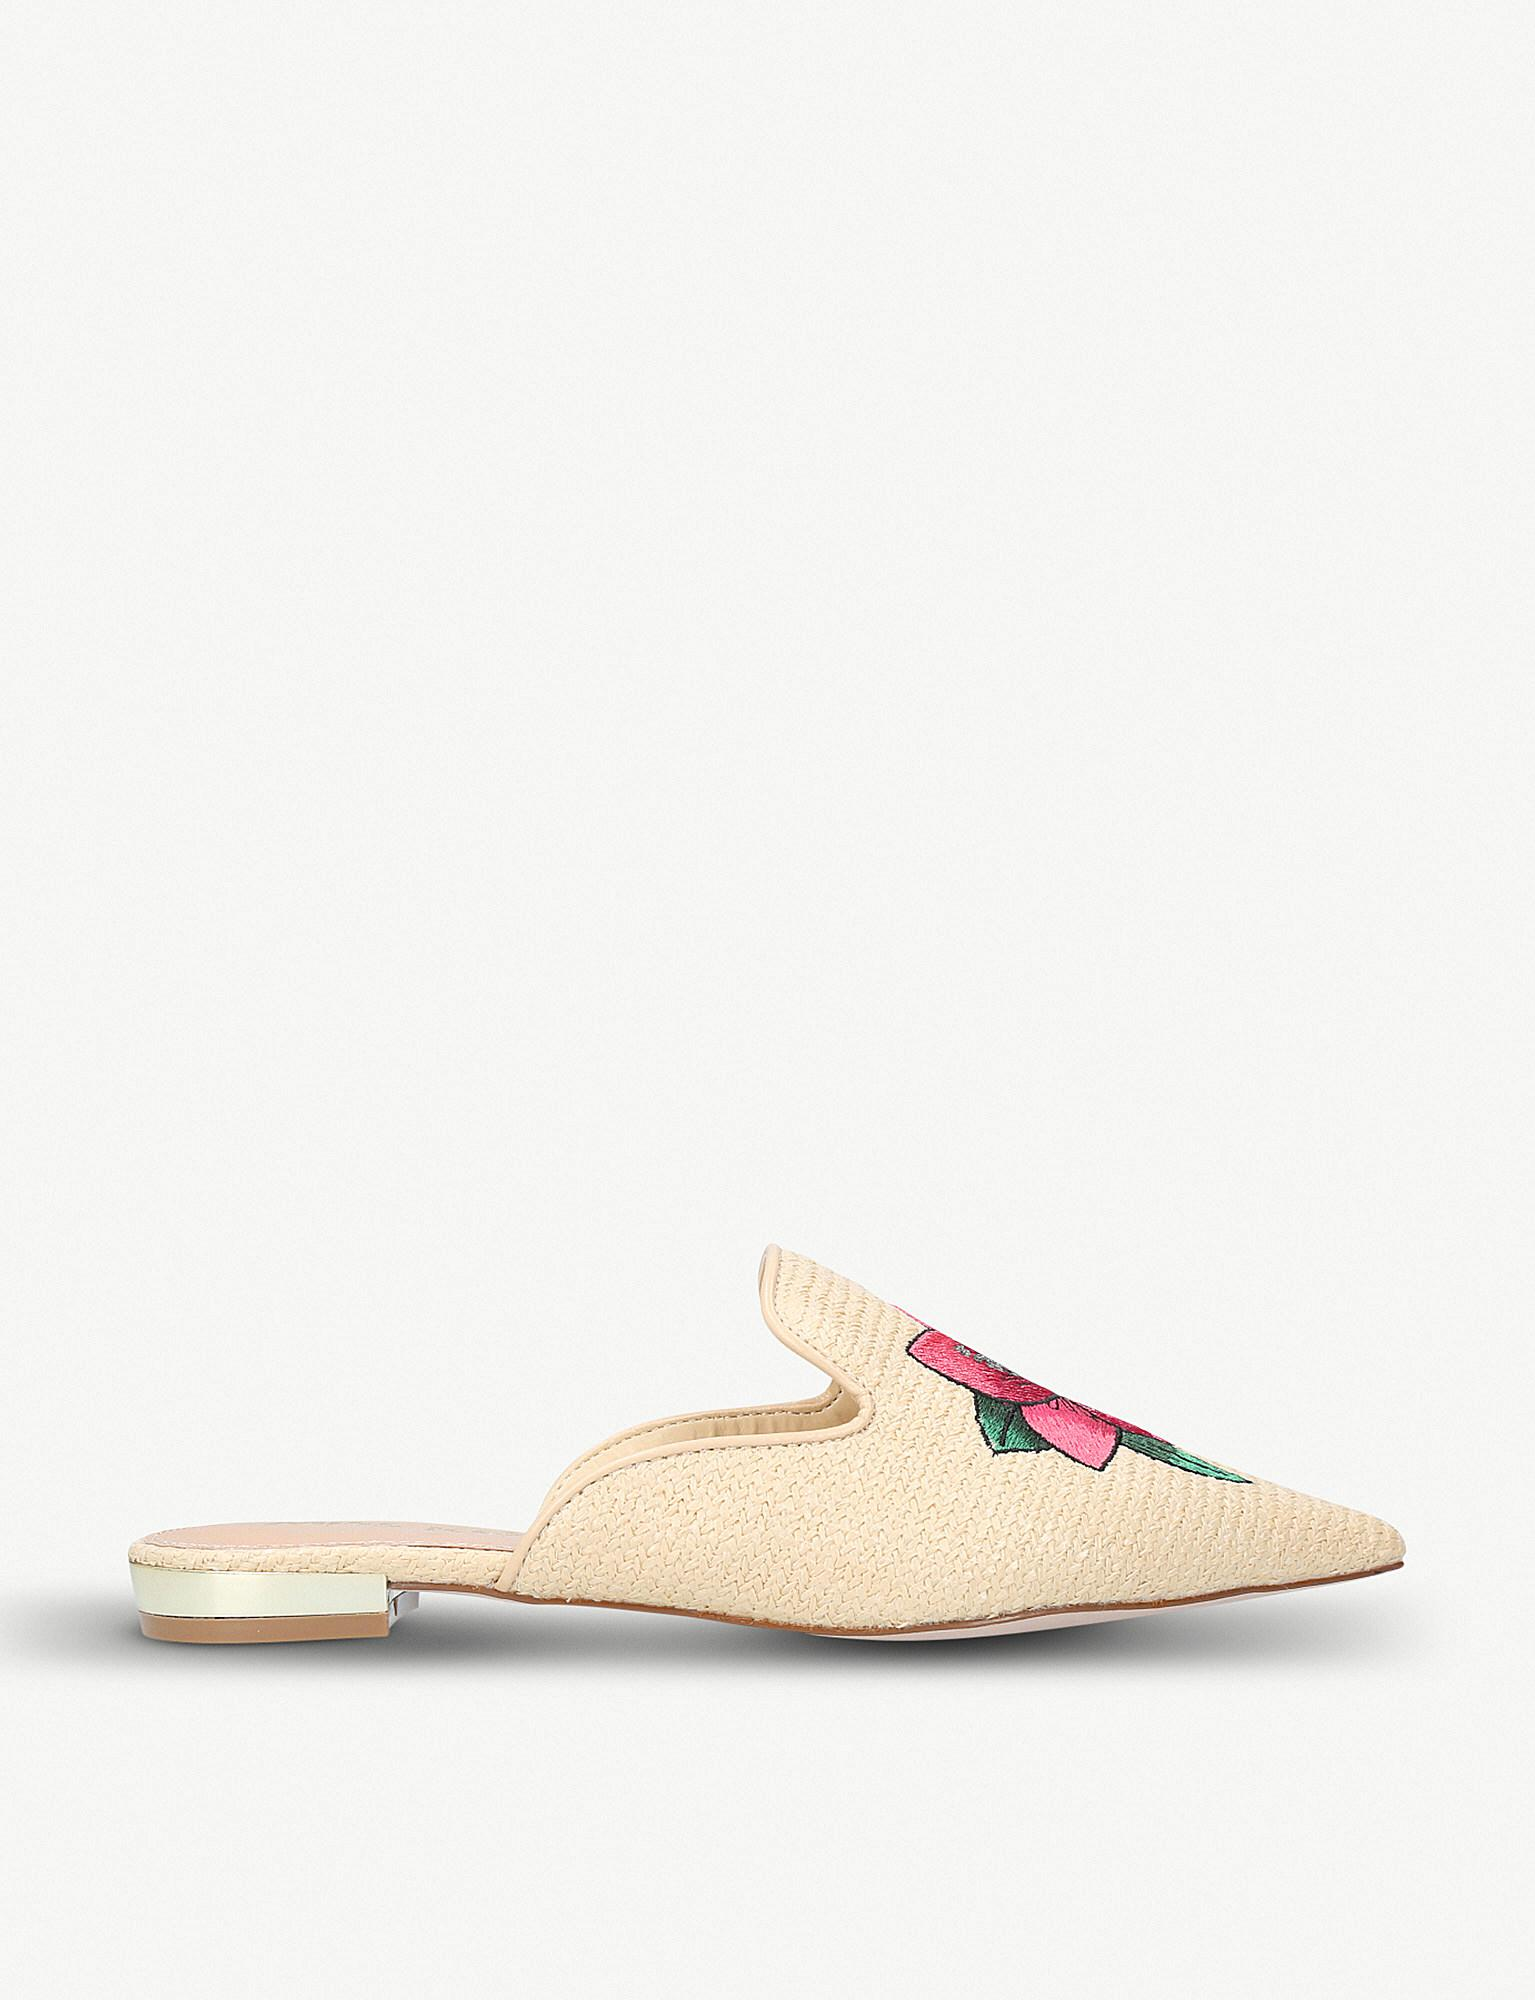 Miss KG Malta woven mule discount under $60 latest cheap online shopping online outlet sale outlet cheap MvFfZ